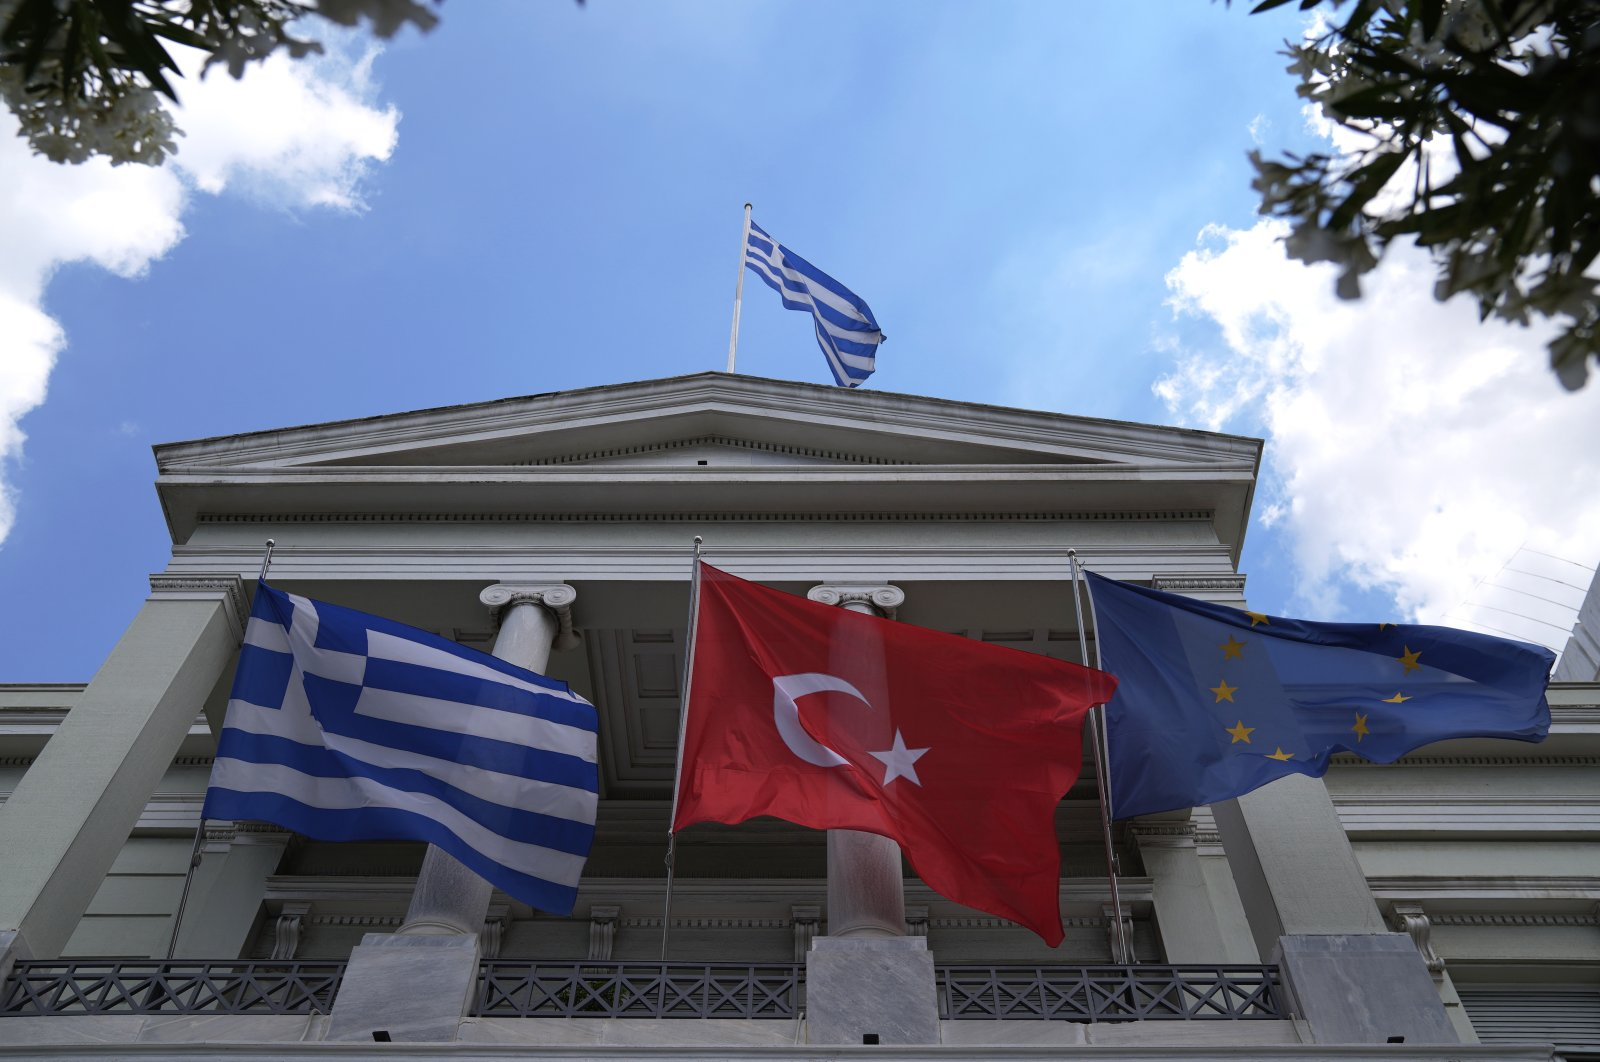 Greek (left) Turkish (middle) and European Union flags wave on the foreign ministry house before a meeting of Greek Foreign Minister Nikos Dendias and his Turkish counterpart Mevlüt Çavuşoğlu in Athens, Greece, May 31, 2021. (AP File Photo)